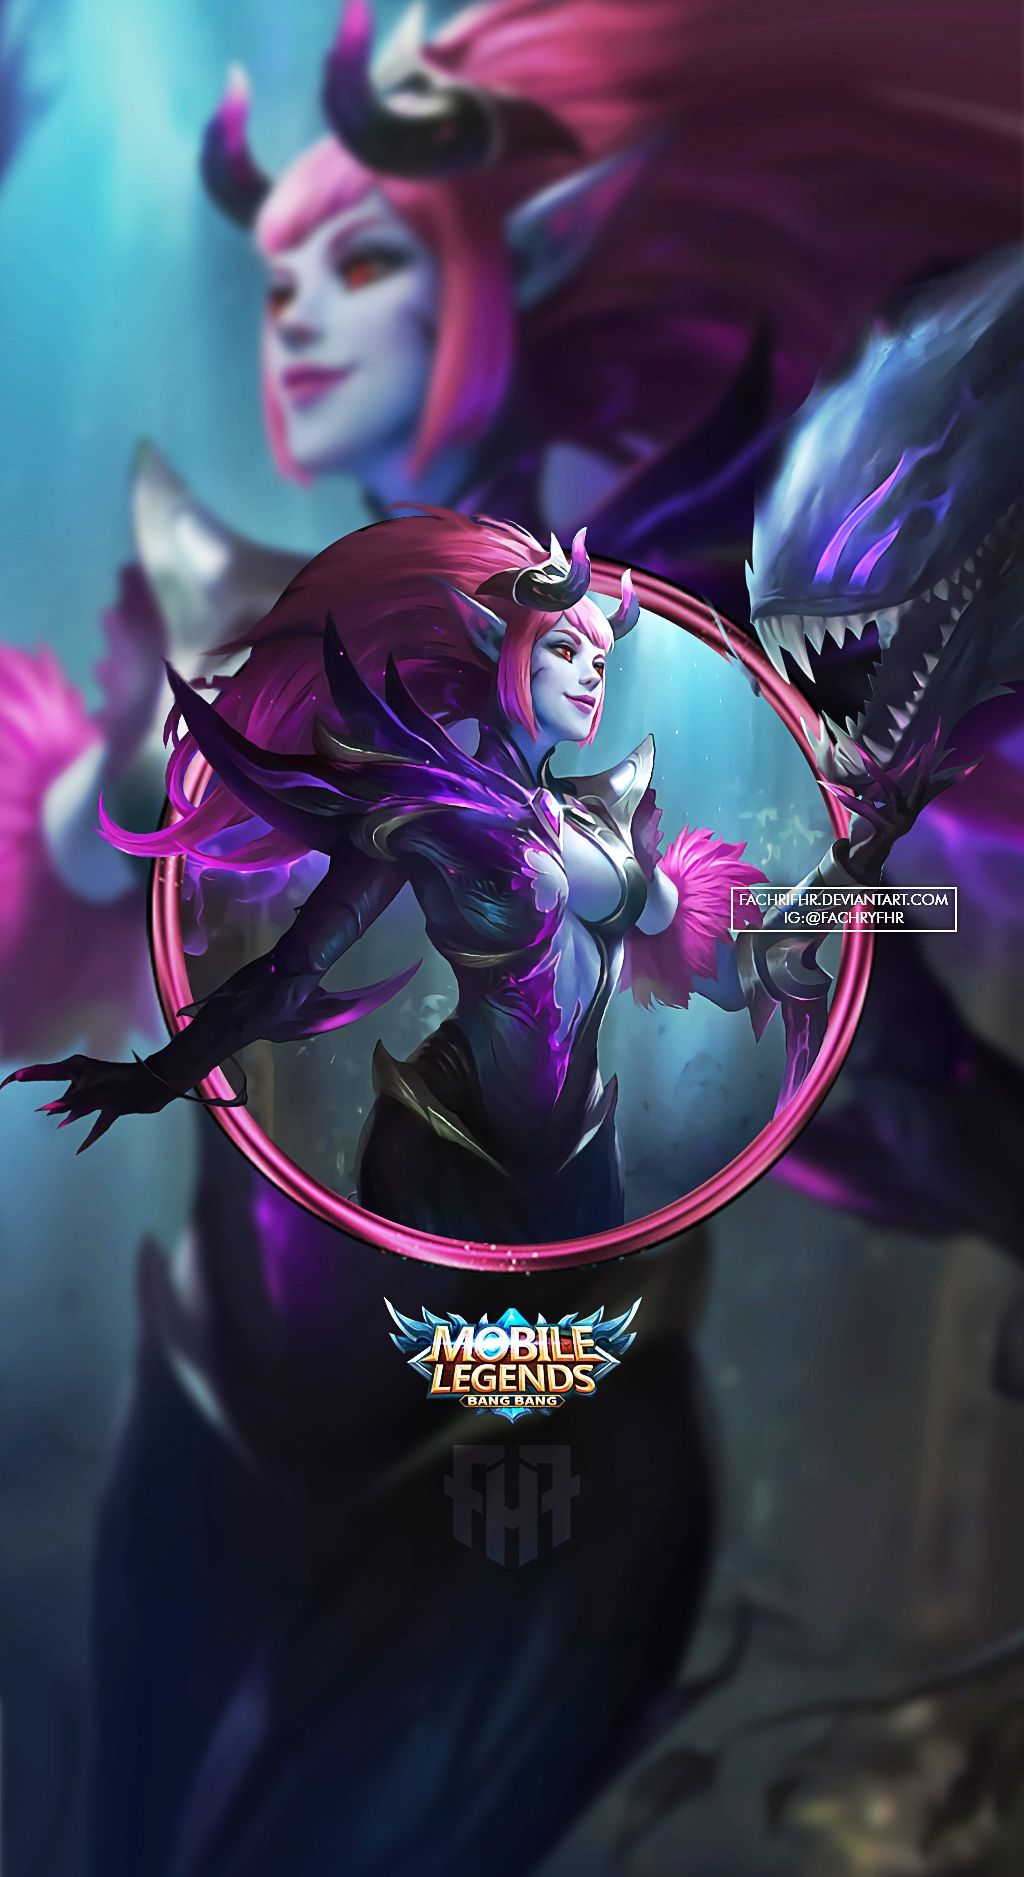 wallpaper_phone_selena_abyssal_witch_by_fachrifhrdc9b4o6